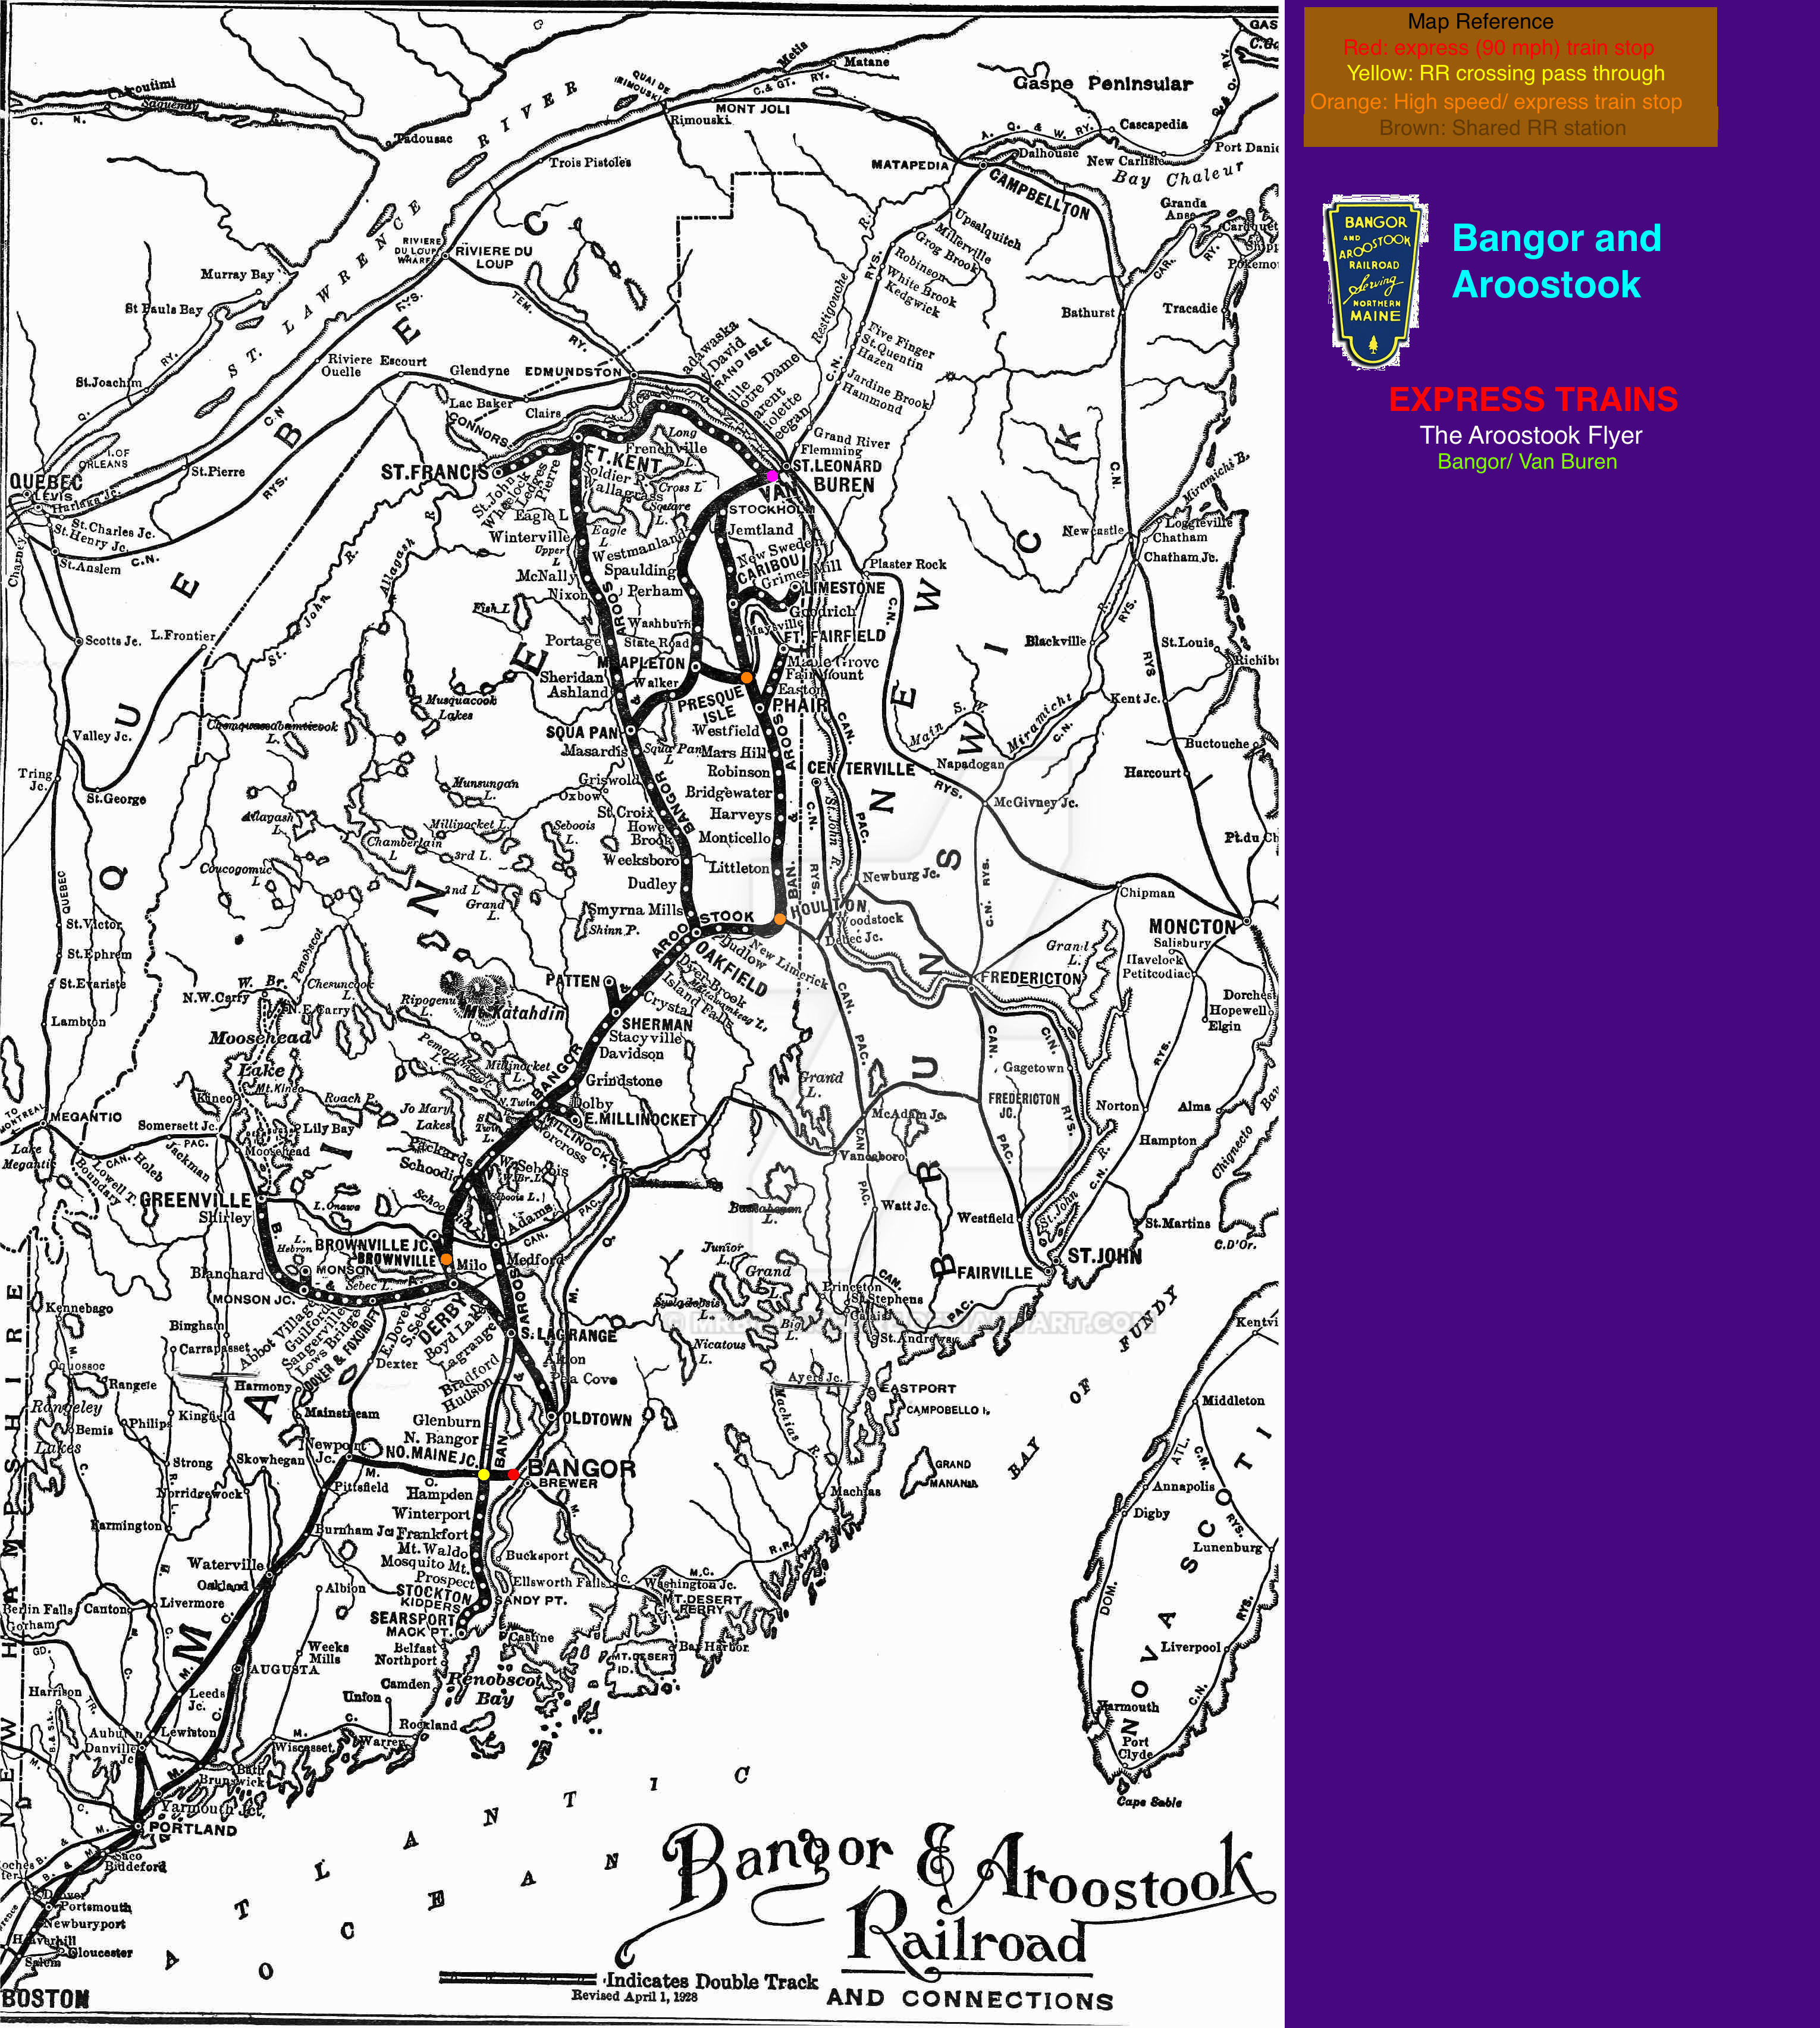 Fictionalized Bangor and Aroostook map by mrbill6ishere